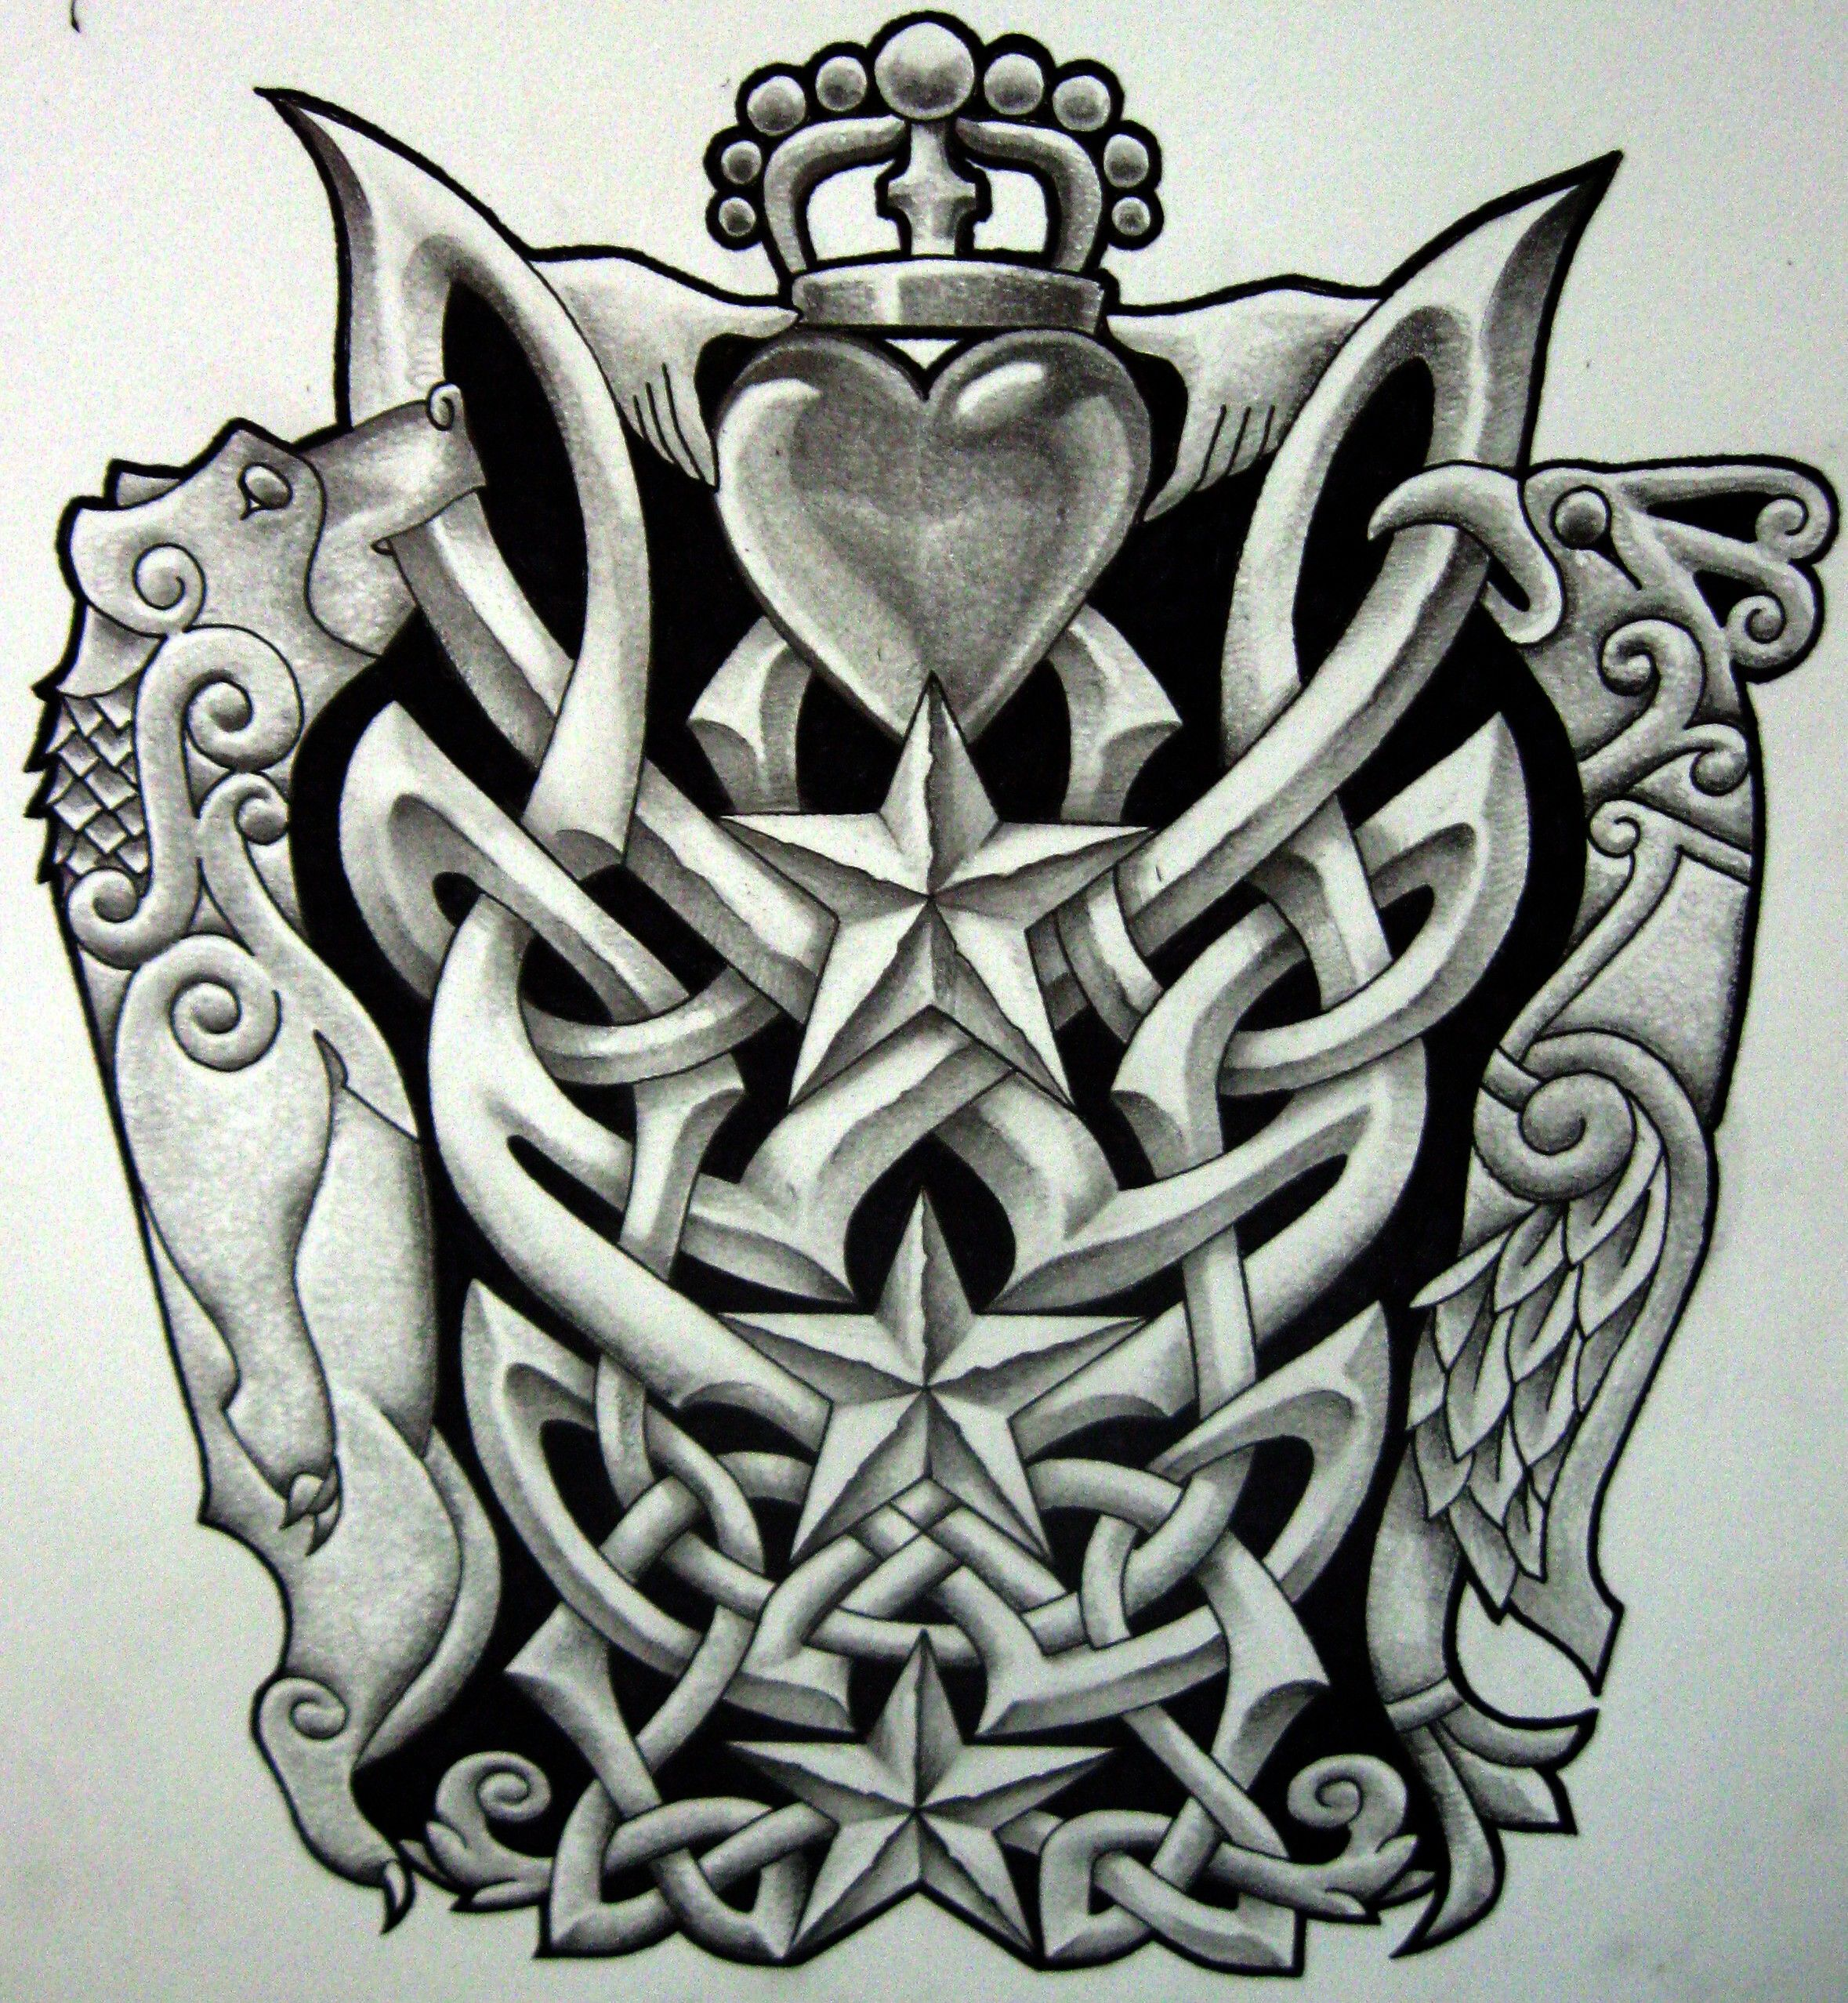 Scottish Tattoo Ideas Half Sleeve: Lower Arm Half Sleeve Design